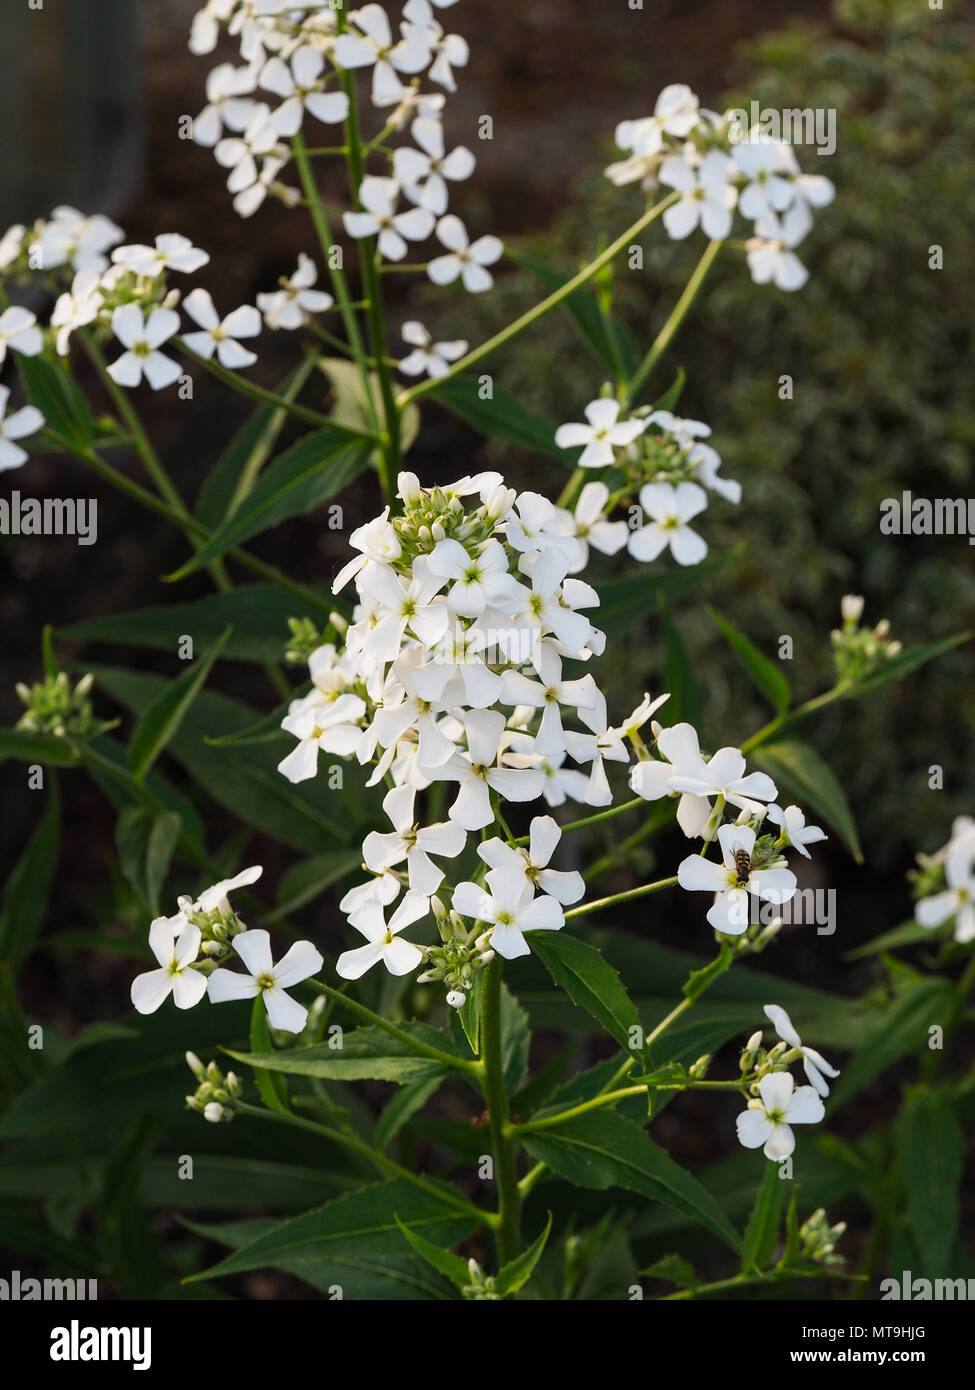 White star shaped flowers stock photos white star shaped flowers a close up of the white flowers of hesperis matronalis alba stock image mightylinksfo